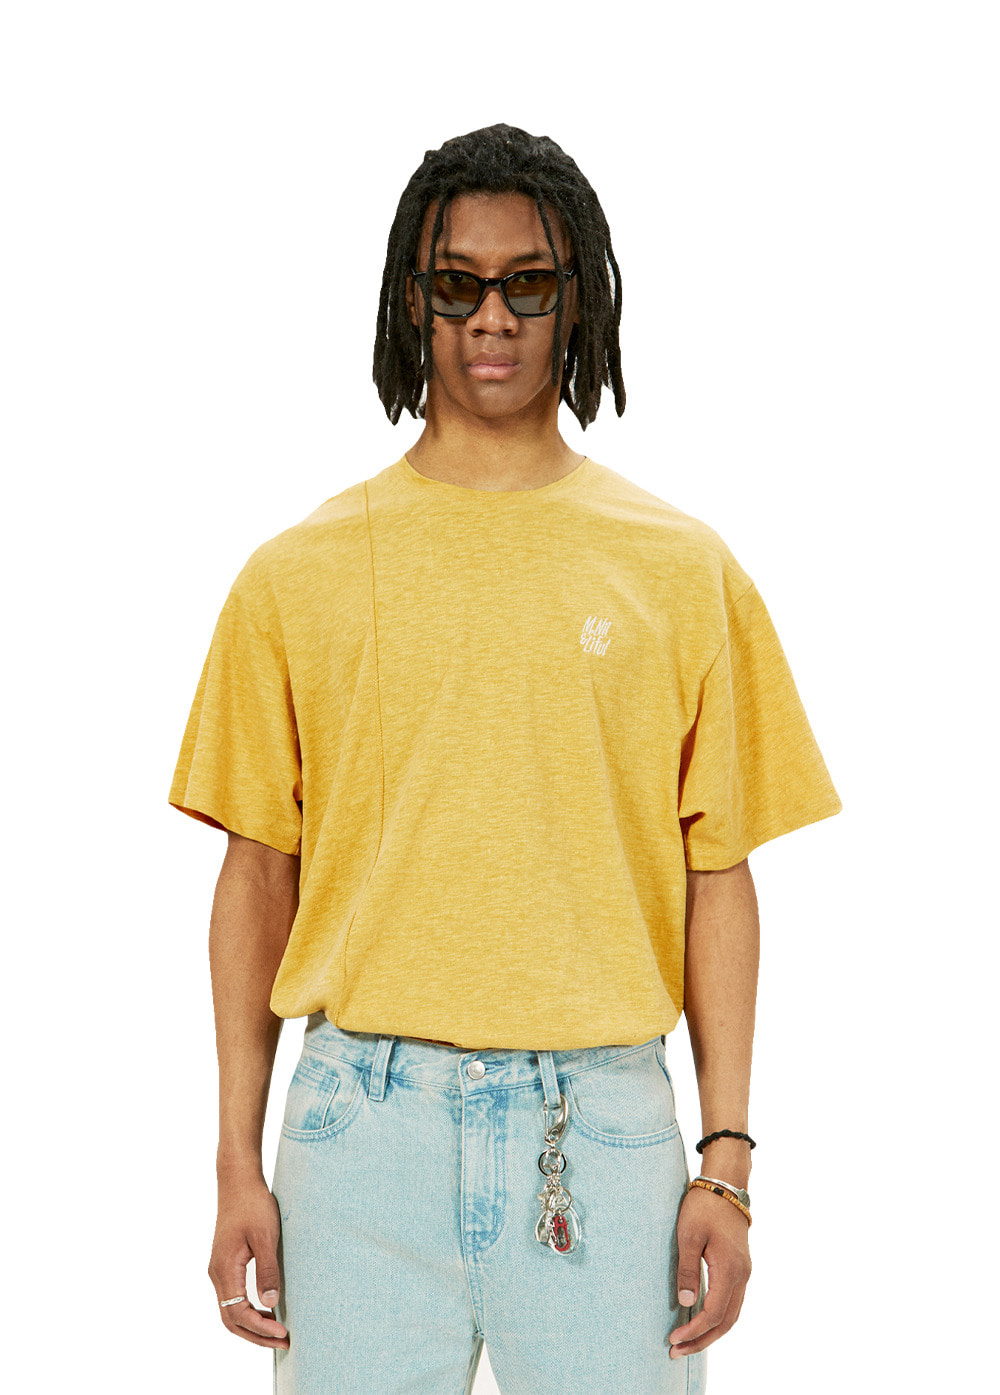 LIFUL X M.NII SEAM OUT TEE yellow